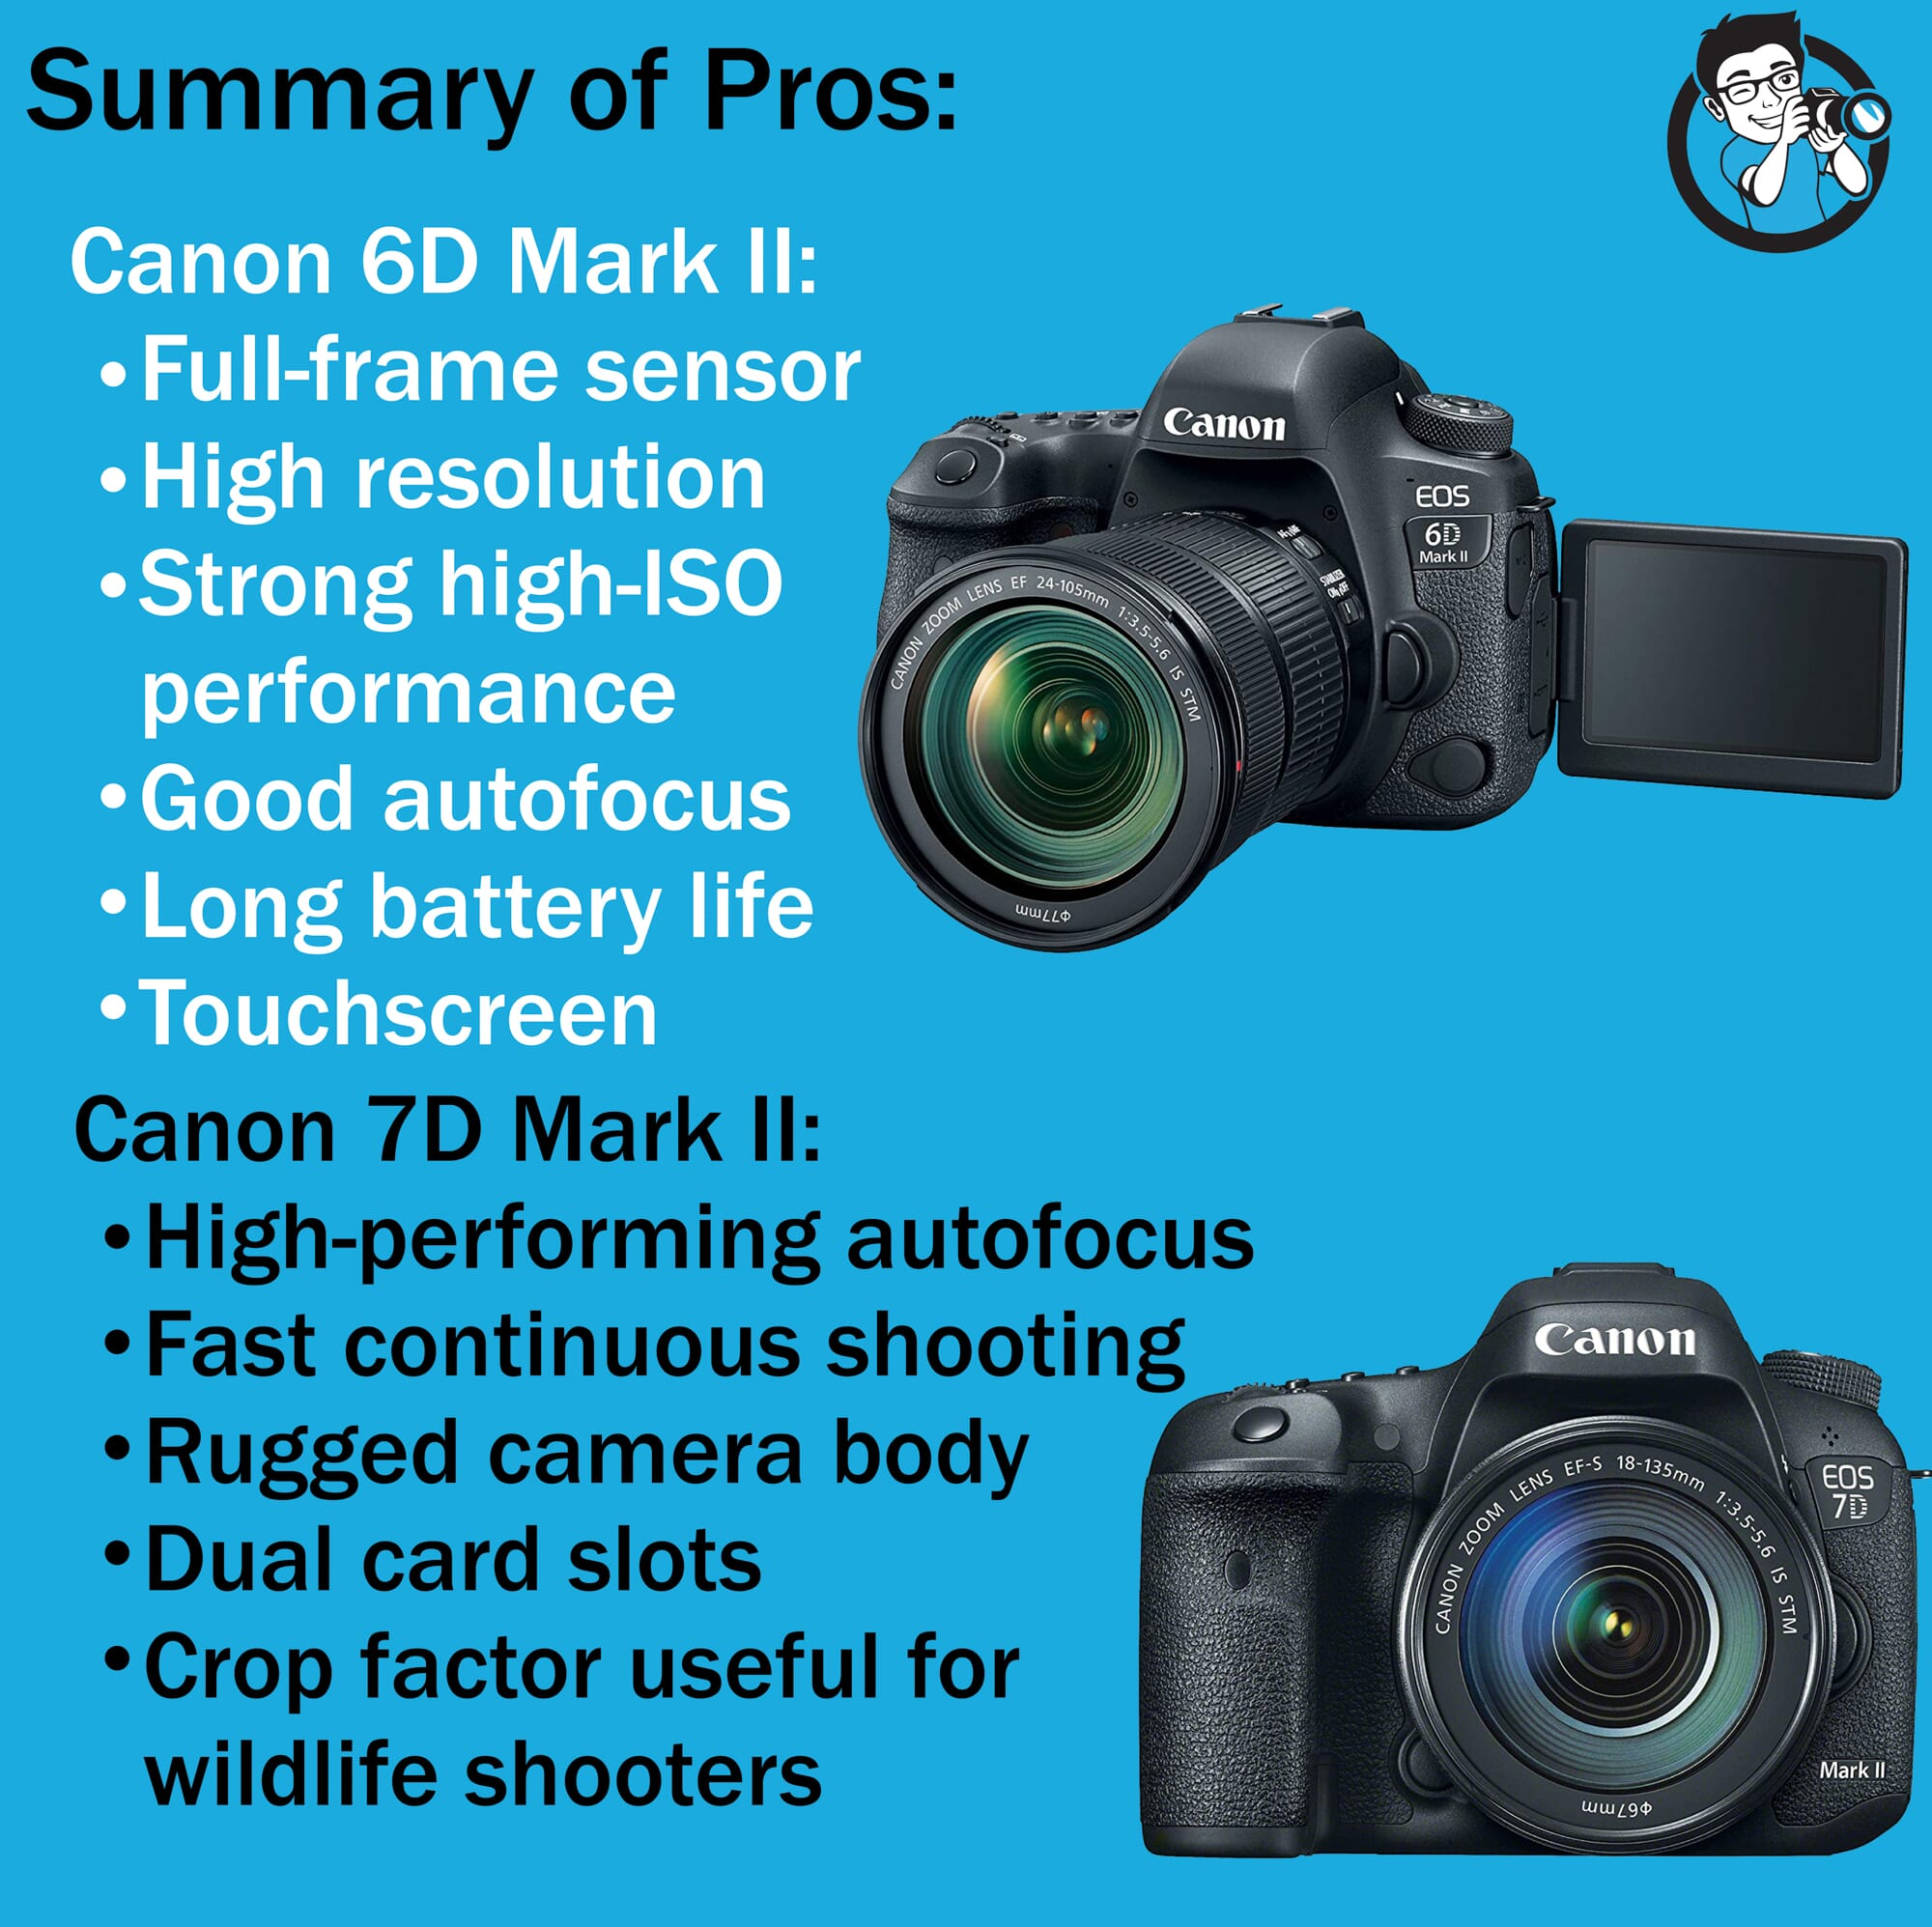 Pros summary Canon 6D vs 7D